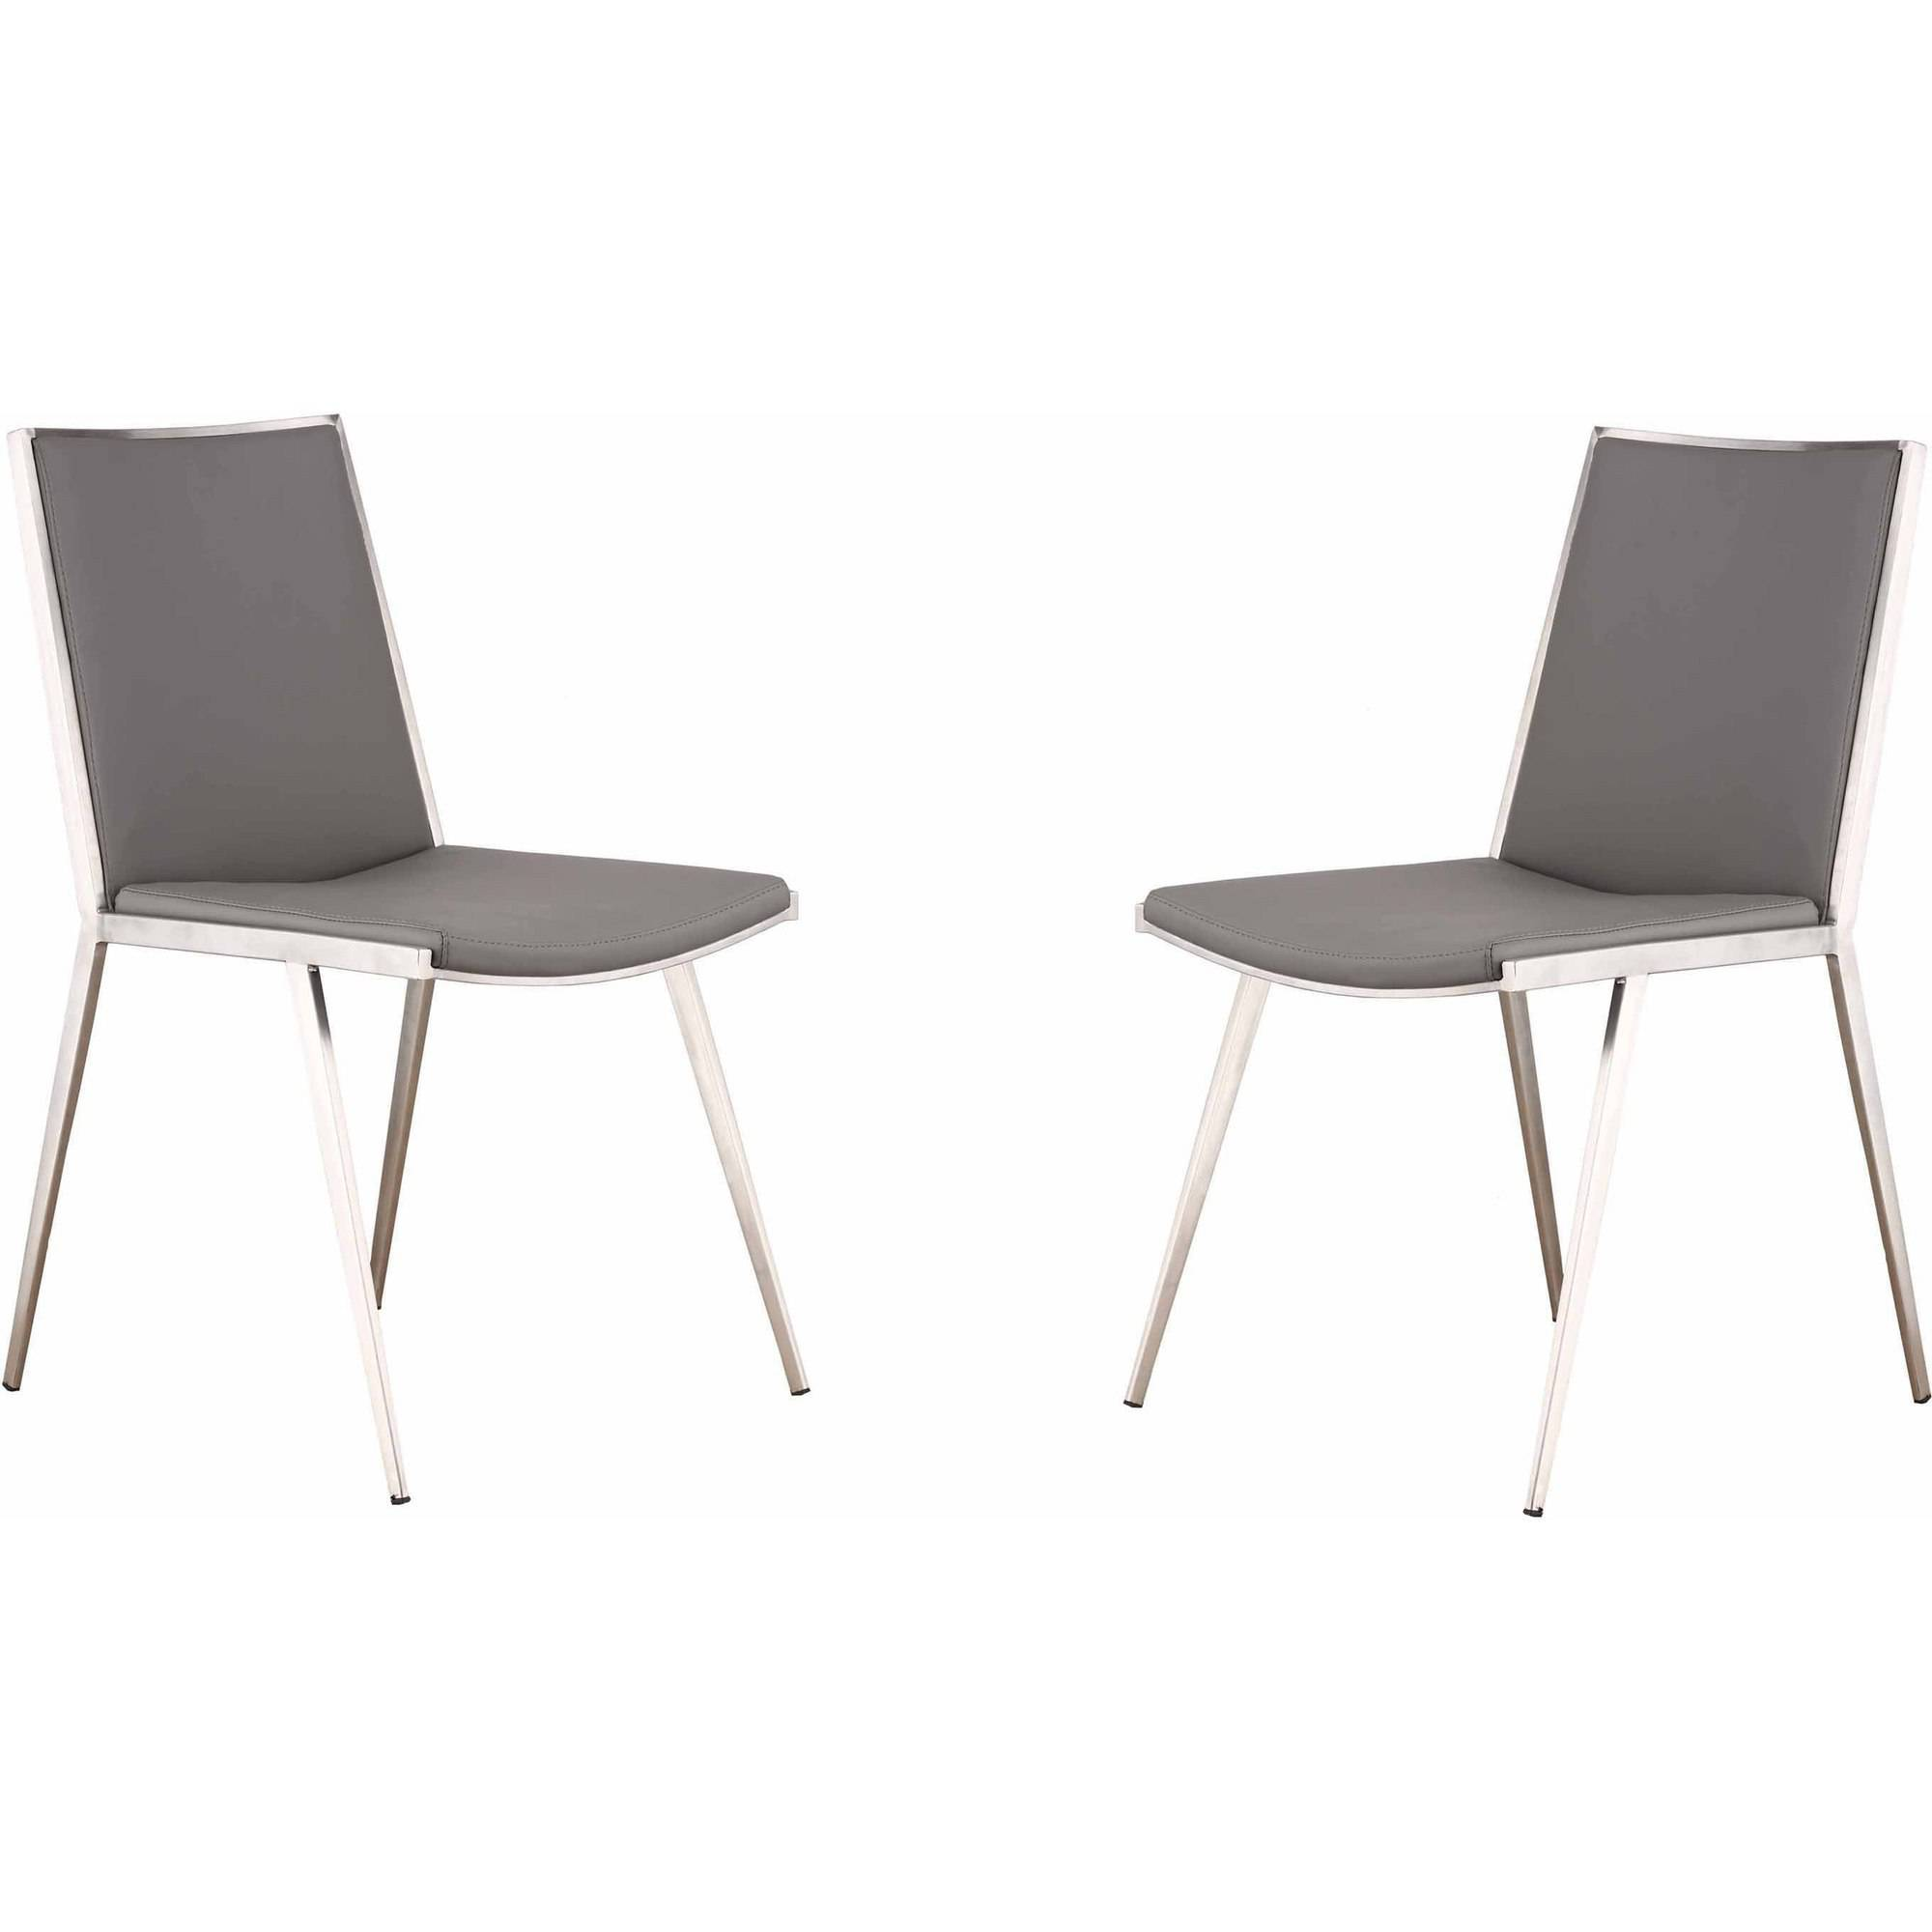 Armen Living Ibiza Brushed Stainless Steel Dining Chair, Gray, Set of 2 by Generic